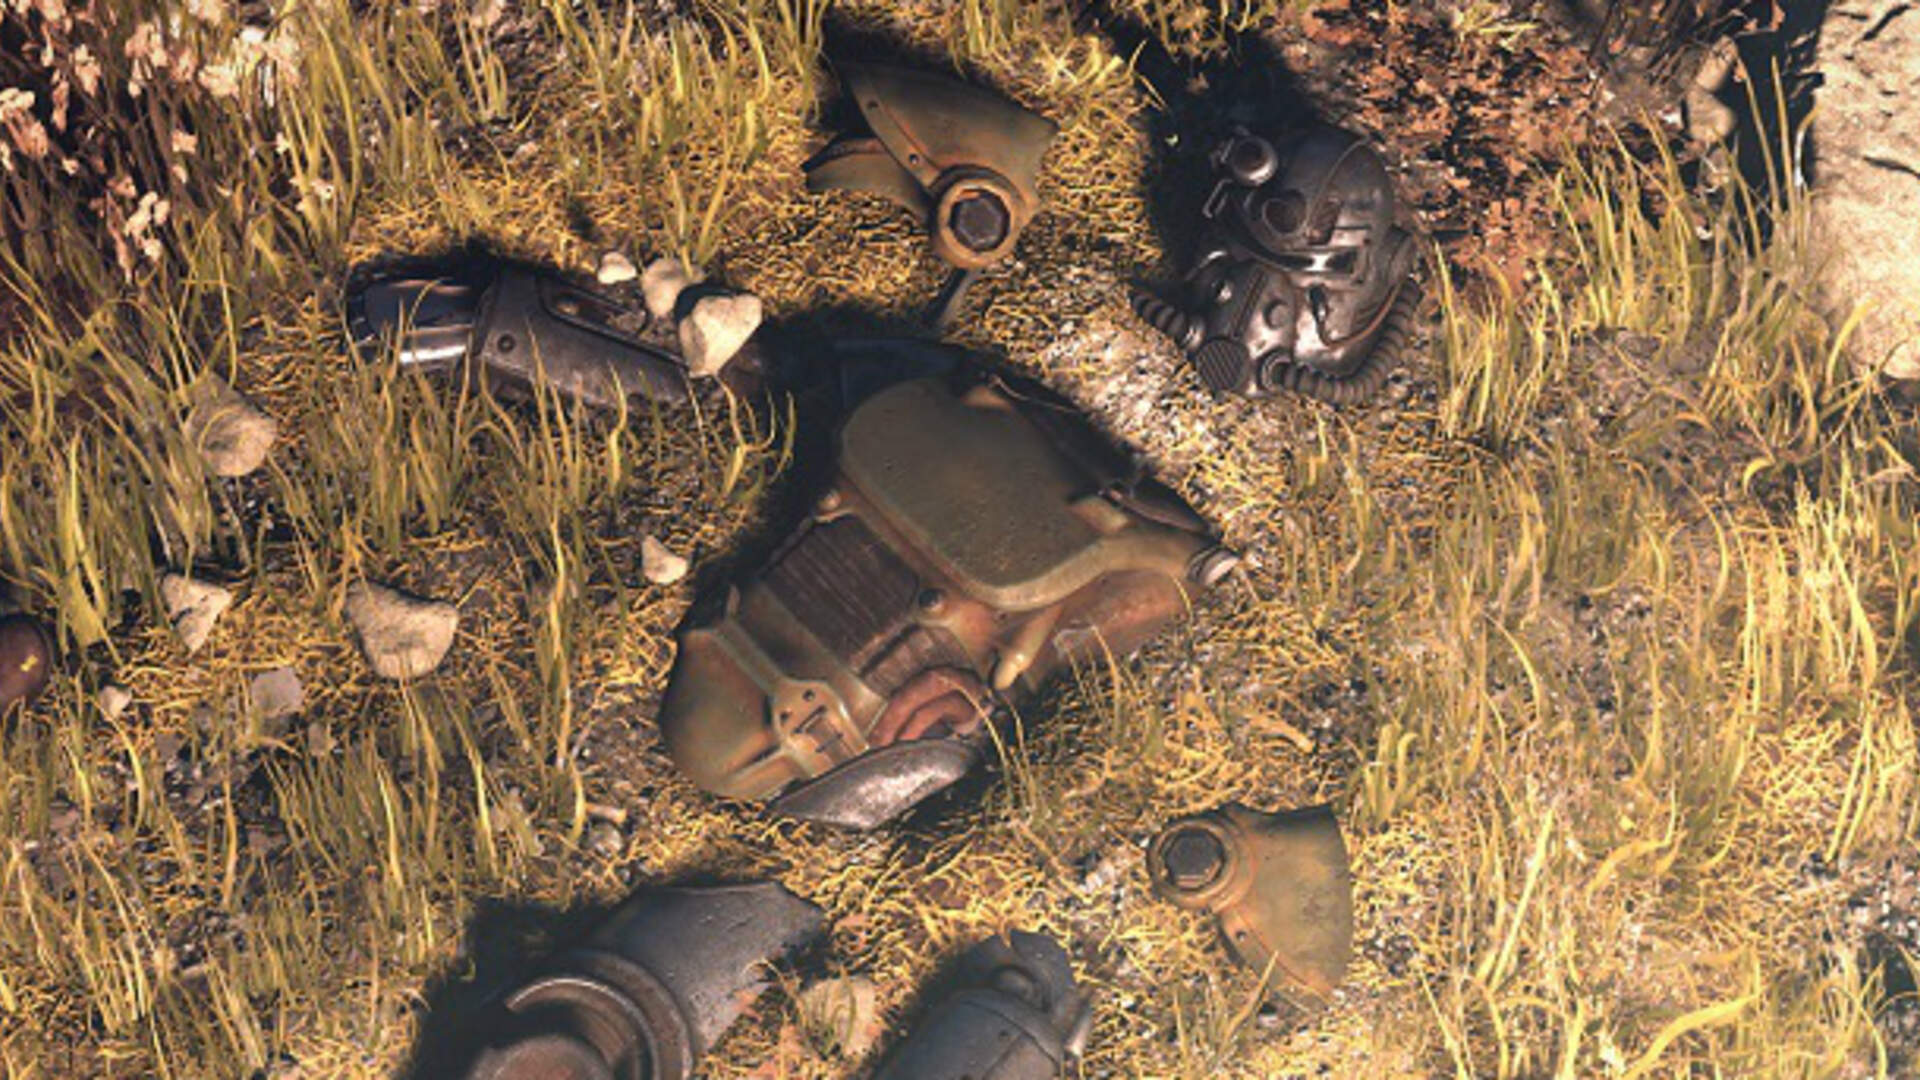 Fallout 76 Desperately Needs a Proper Endgame